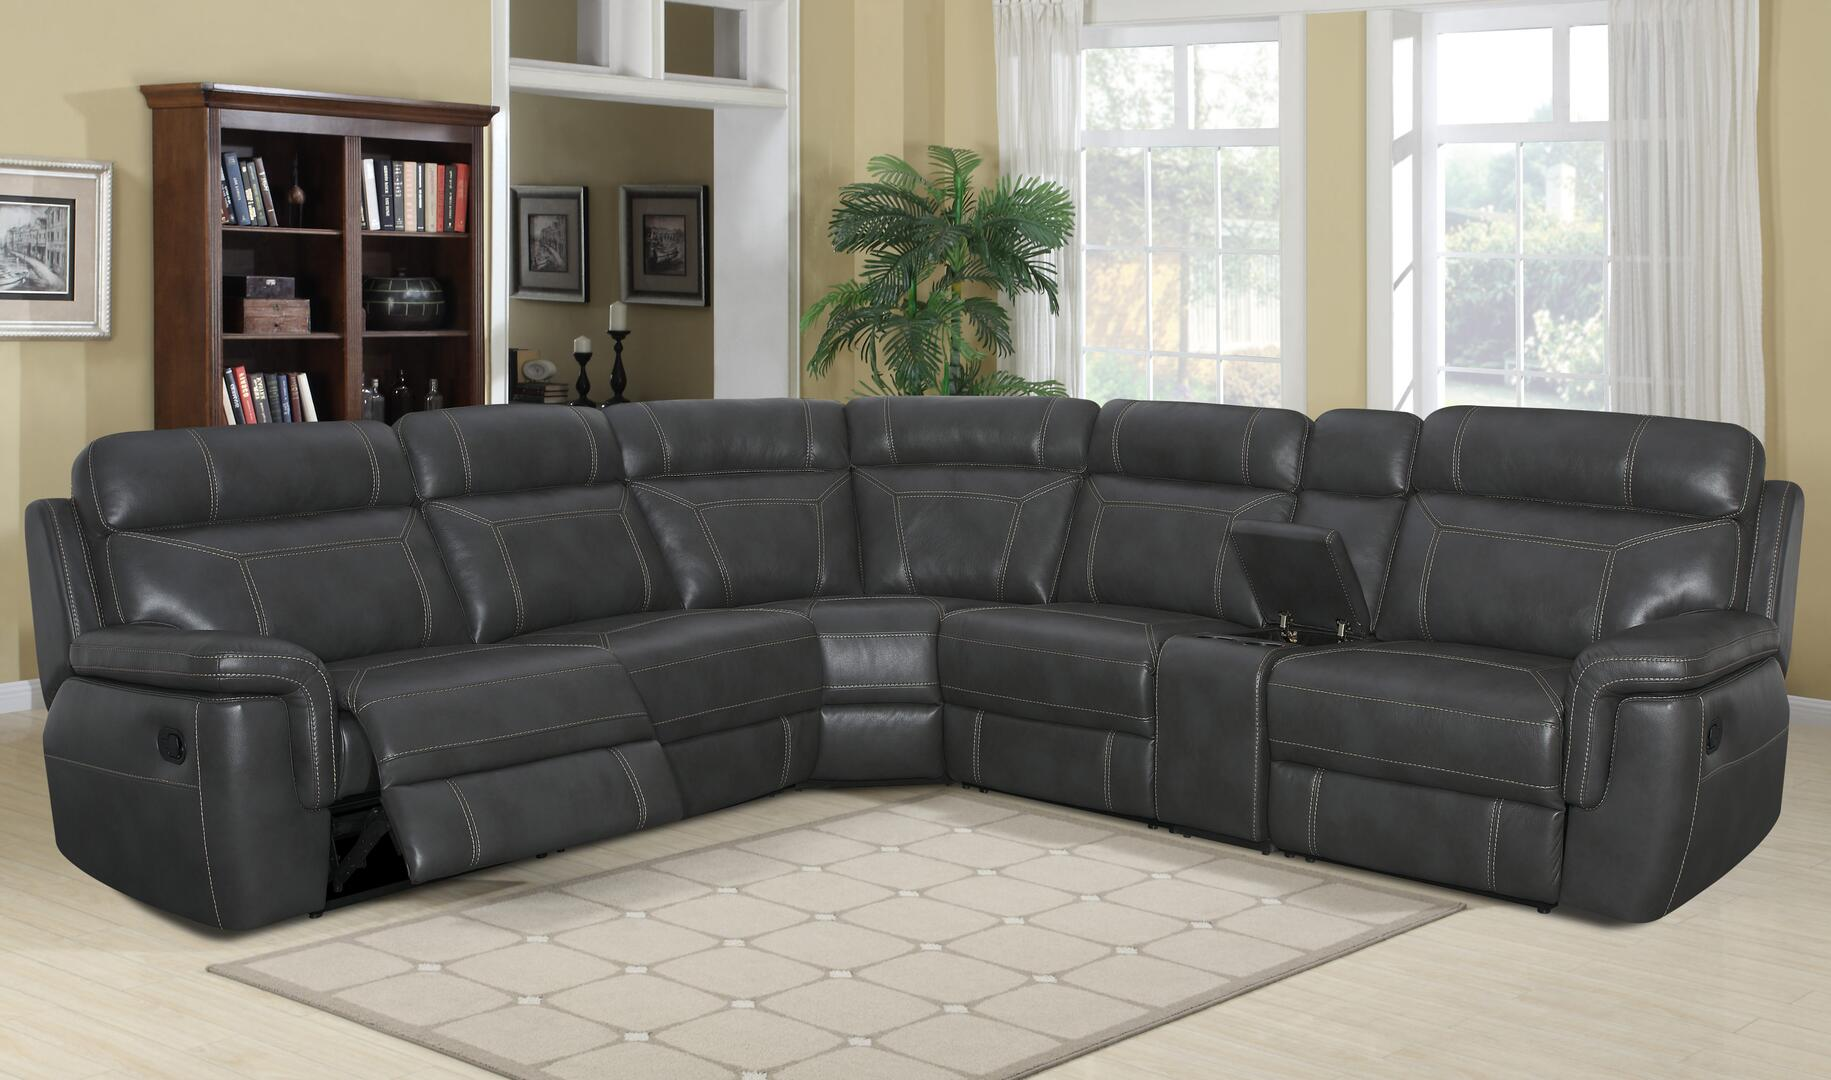 sofa reclining left sofas collections outlet with furniture chaise efo side belleview item lmg klaussner sectional